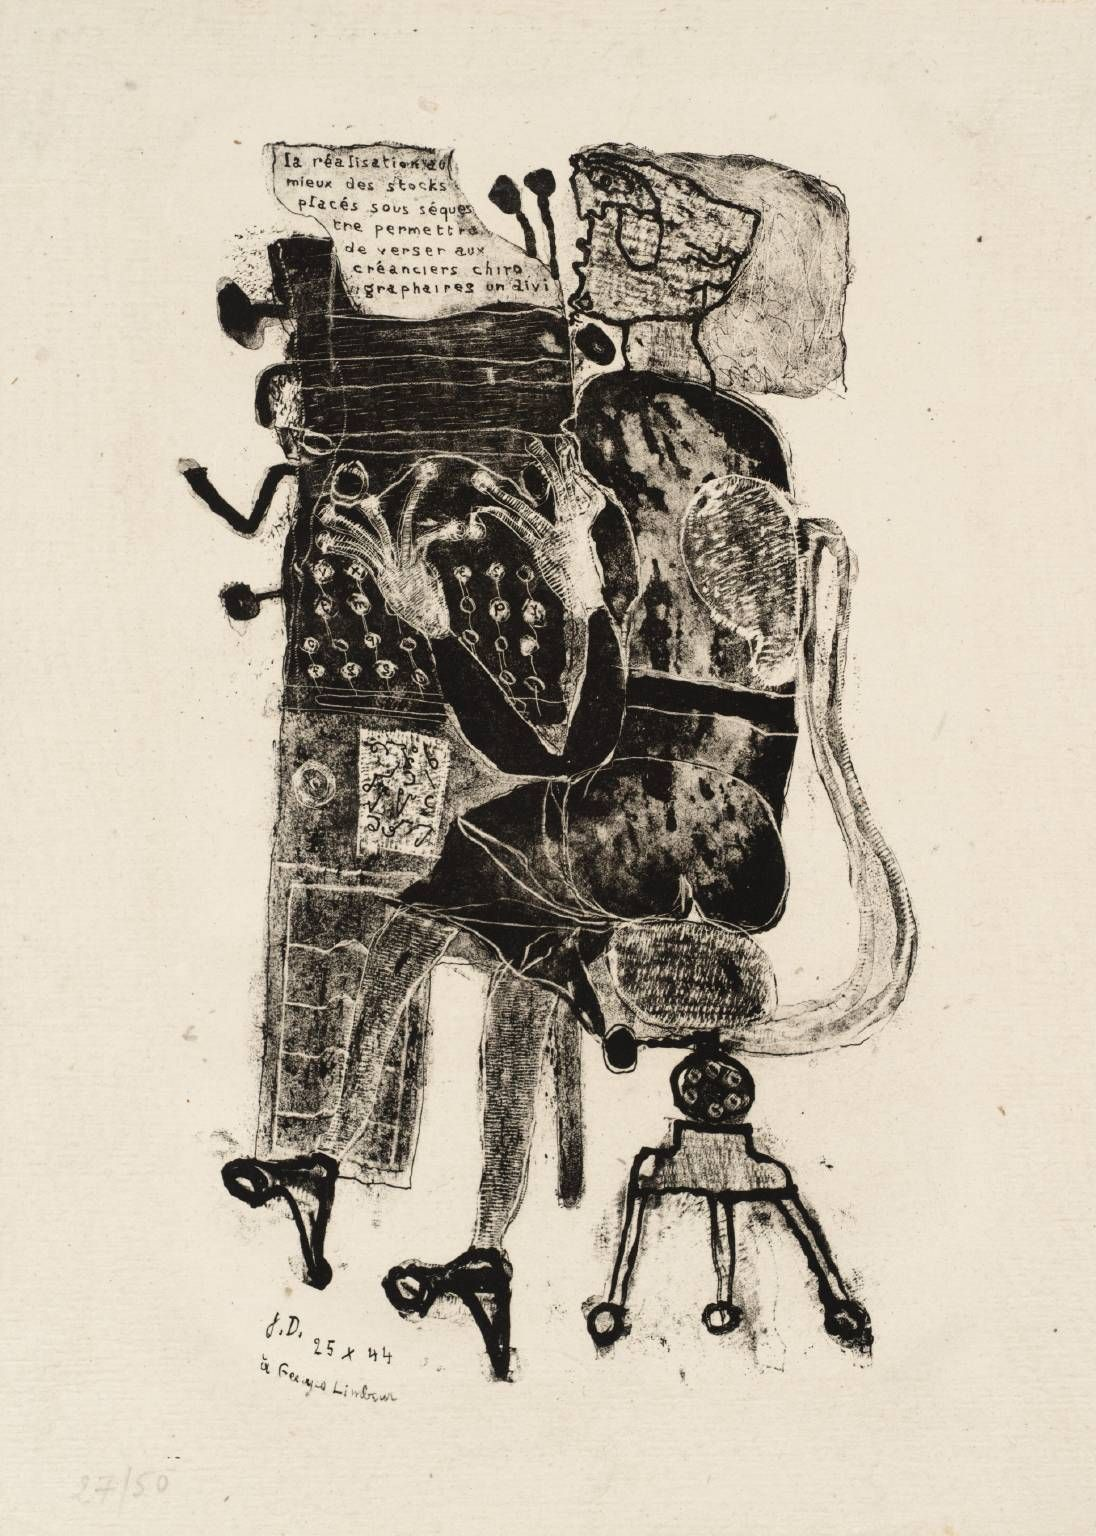 Jean Dubuffet Typist From Matter And Memory Published Adagp Paris And Dacs